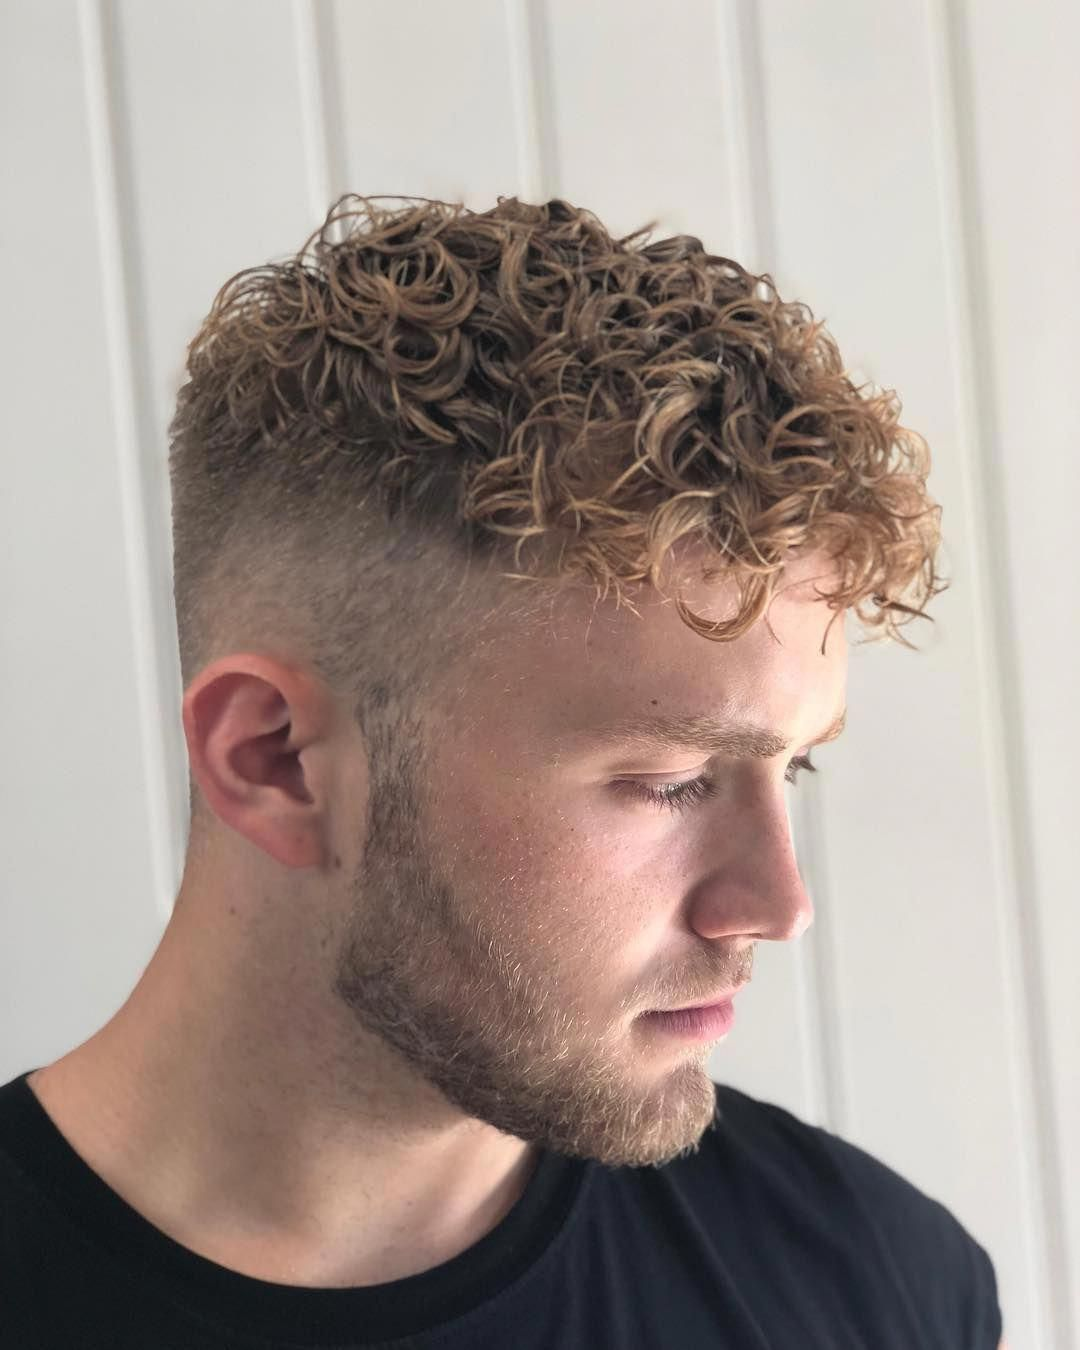 Perm.-2 70+ Outdated Hairstyle Ideas Coming Back in 2021